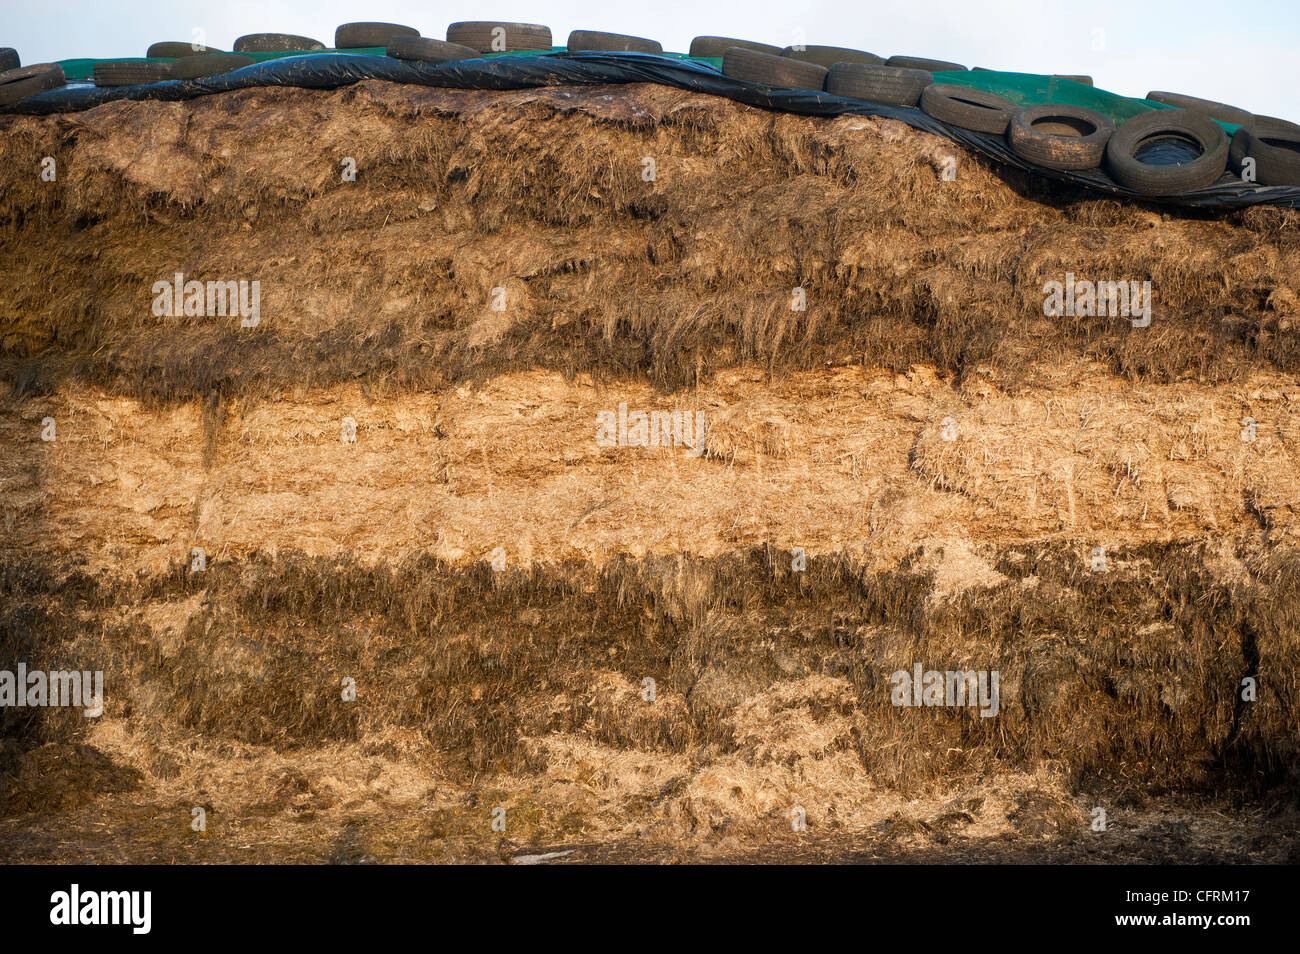 Face of silage clamp, showing different layers of crop. - Stock Image